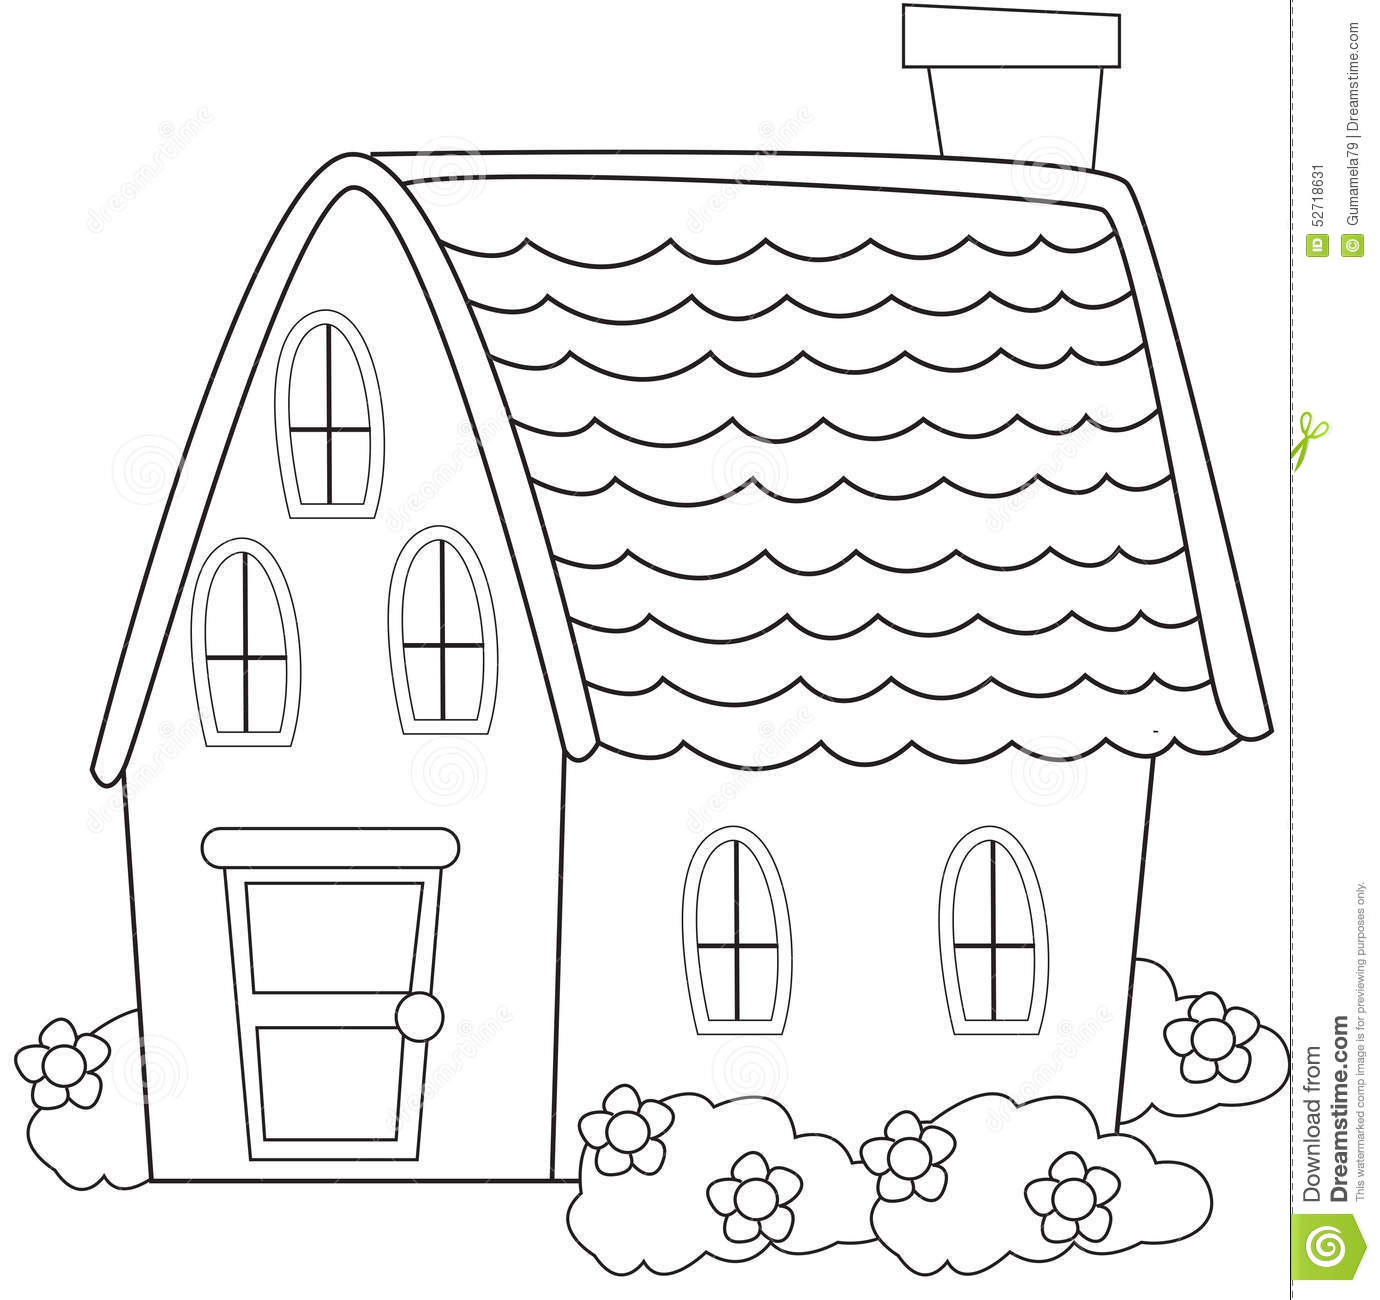 House coloring page stock illustration. Image of characters - 50165750